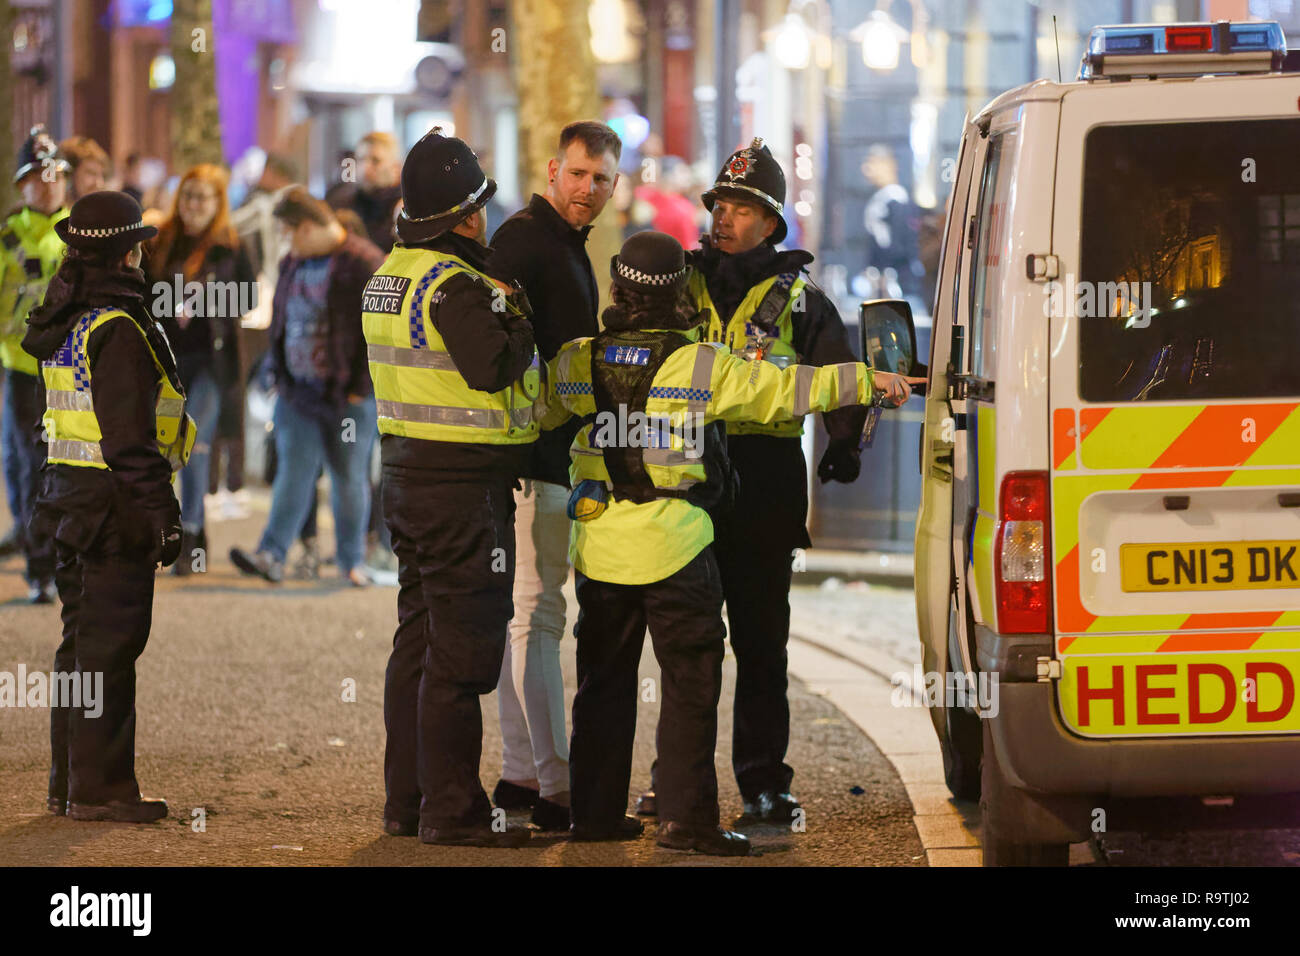 Police Arrest Stock Photos & Police Arrest Stock Images - Alamy